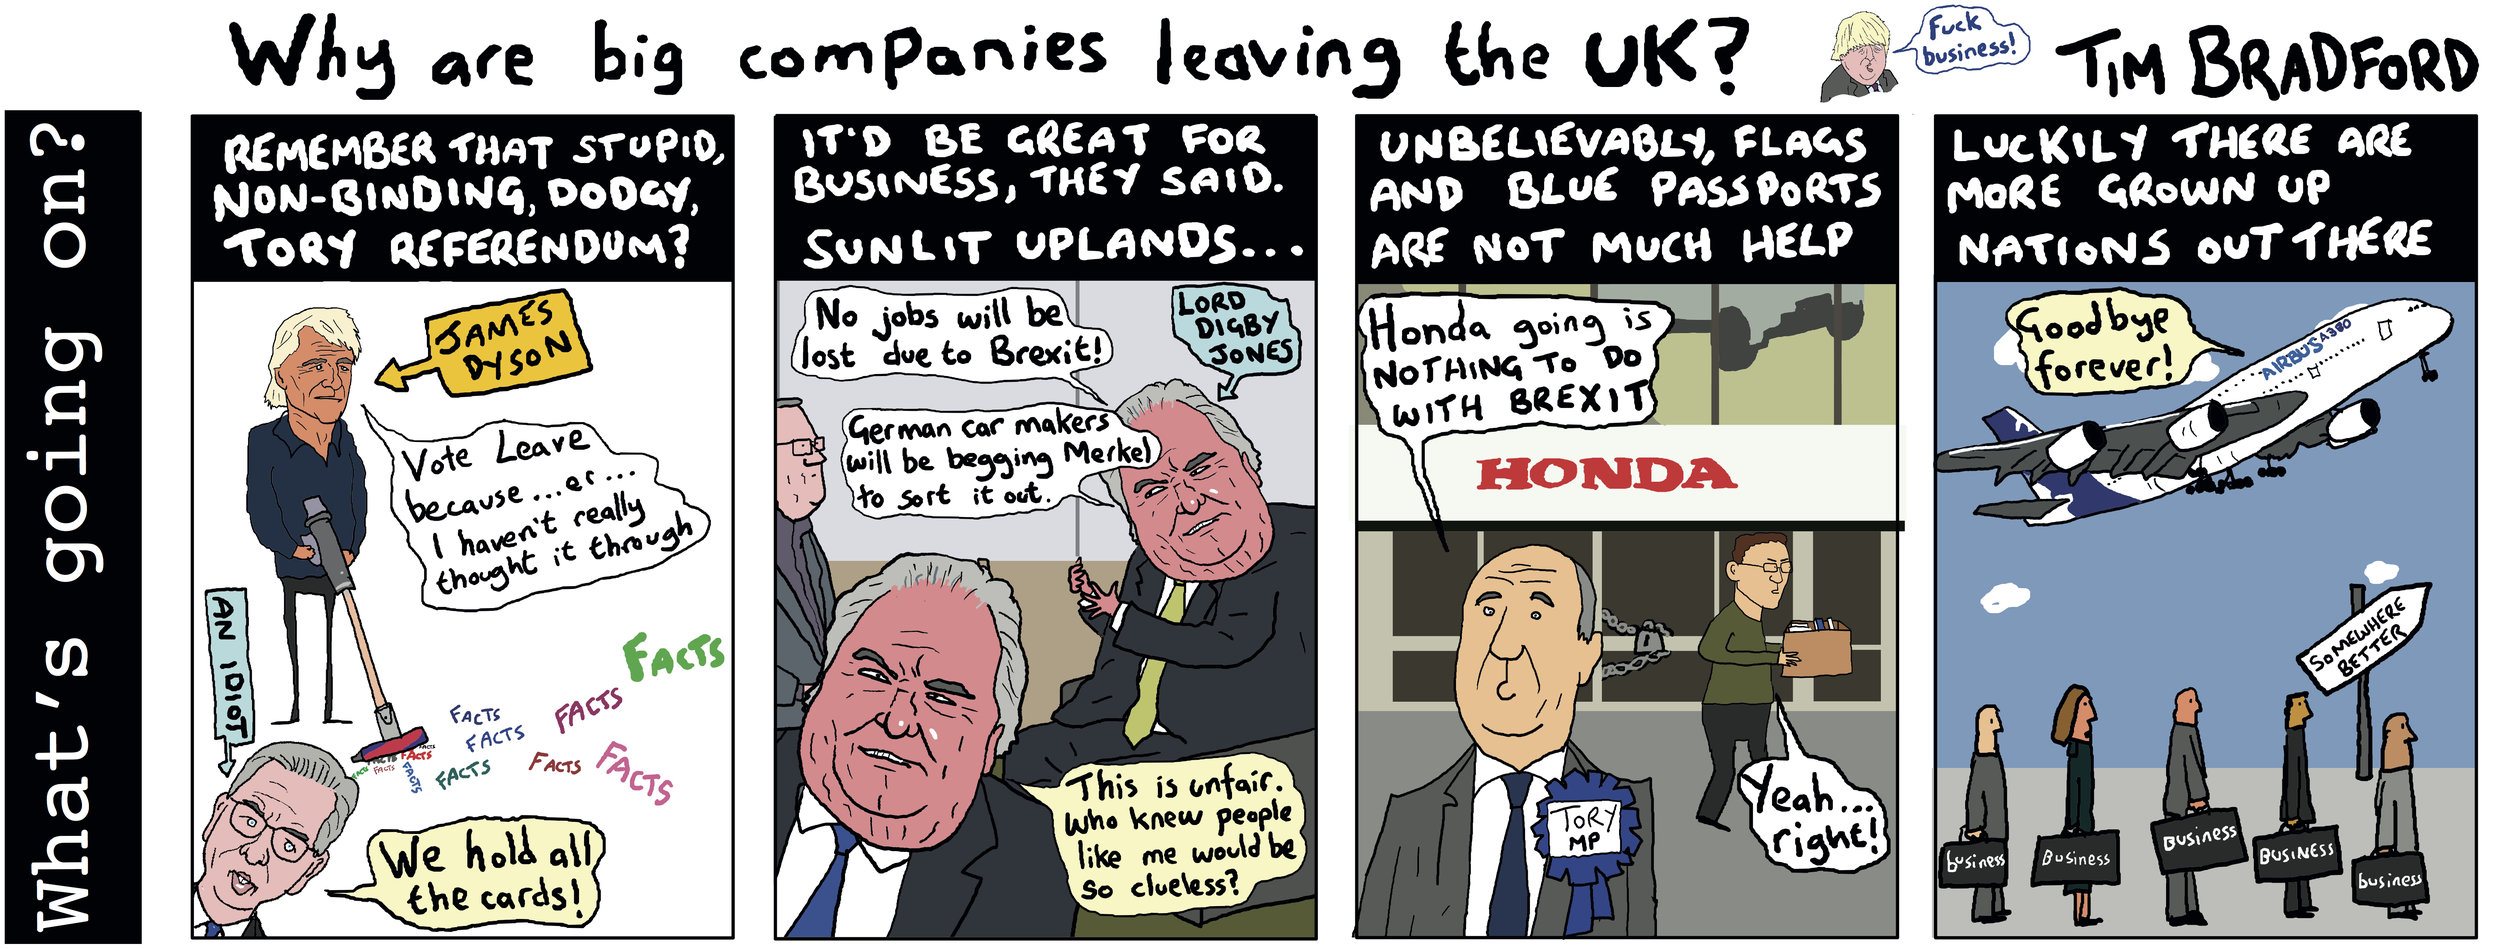 Why are big companies leaving the UK? - 19/02/2019